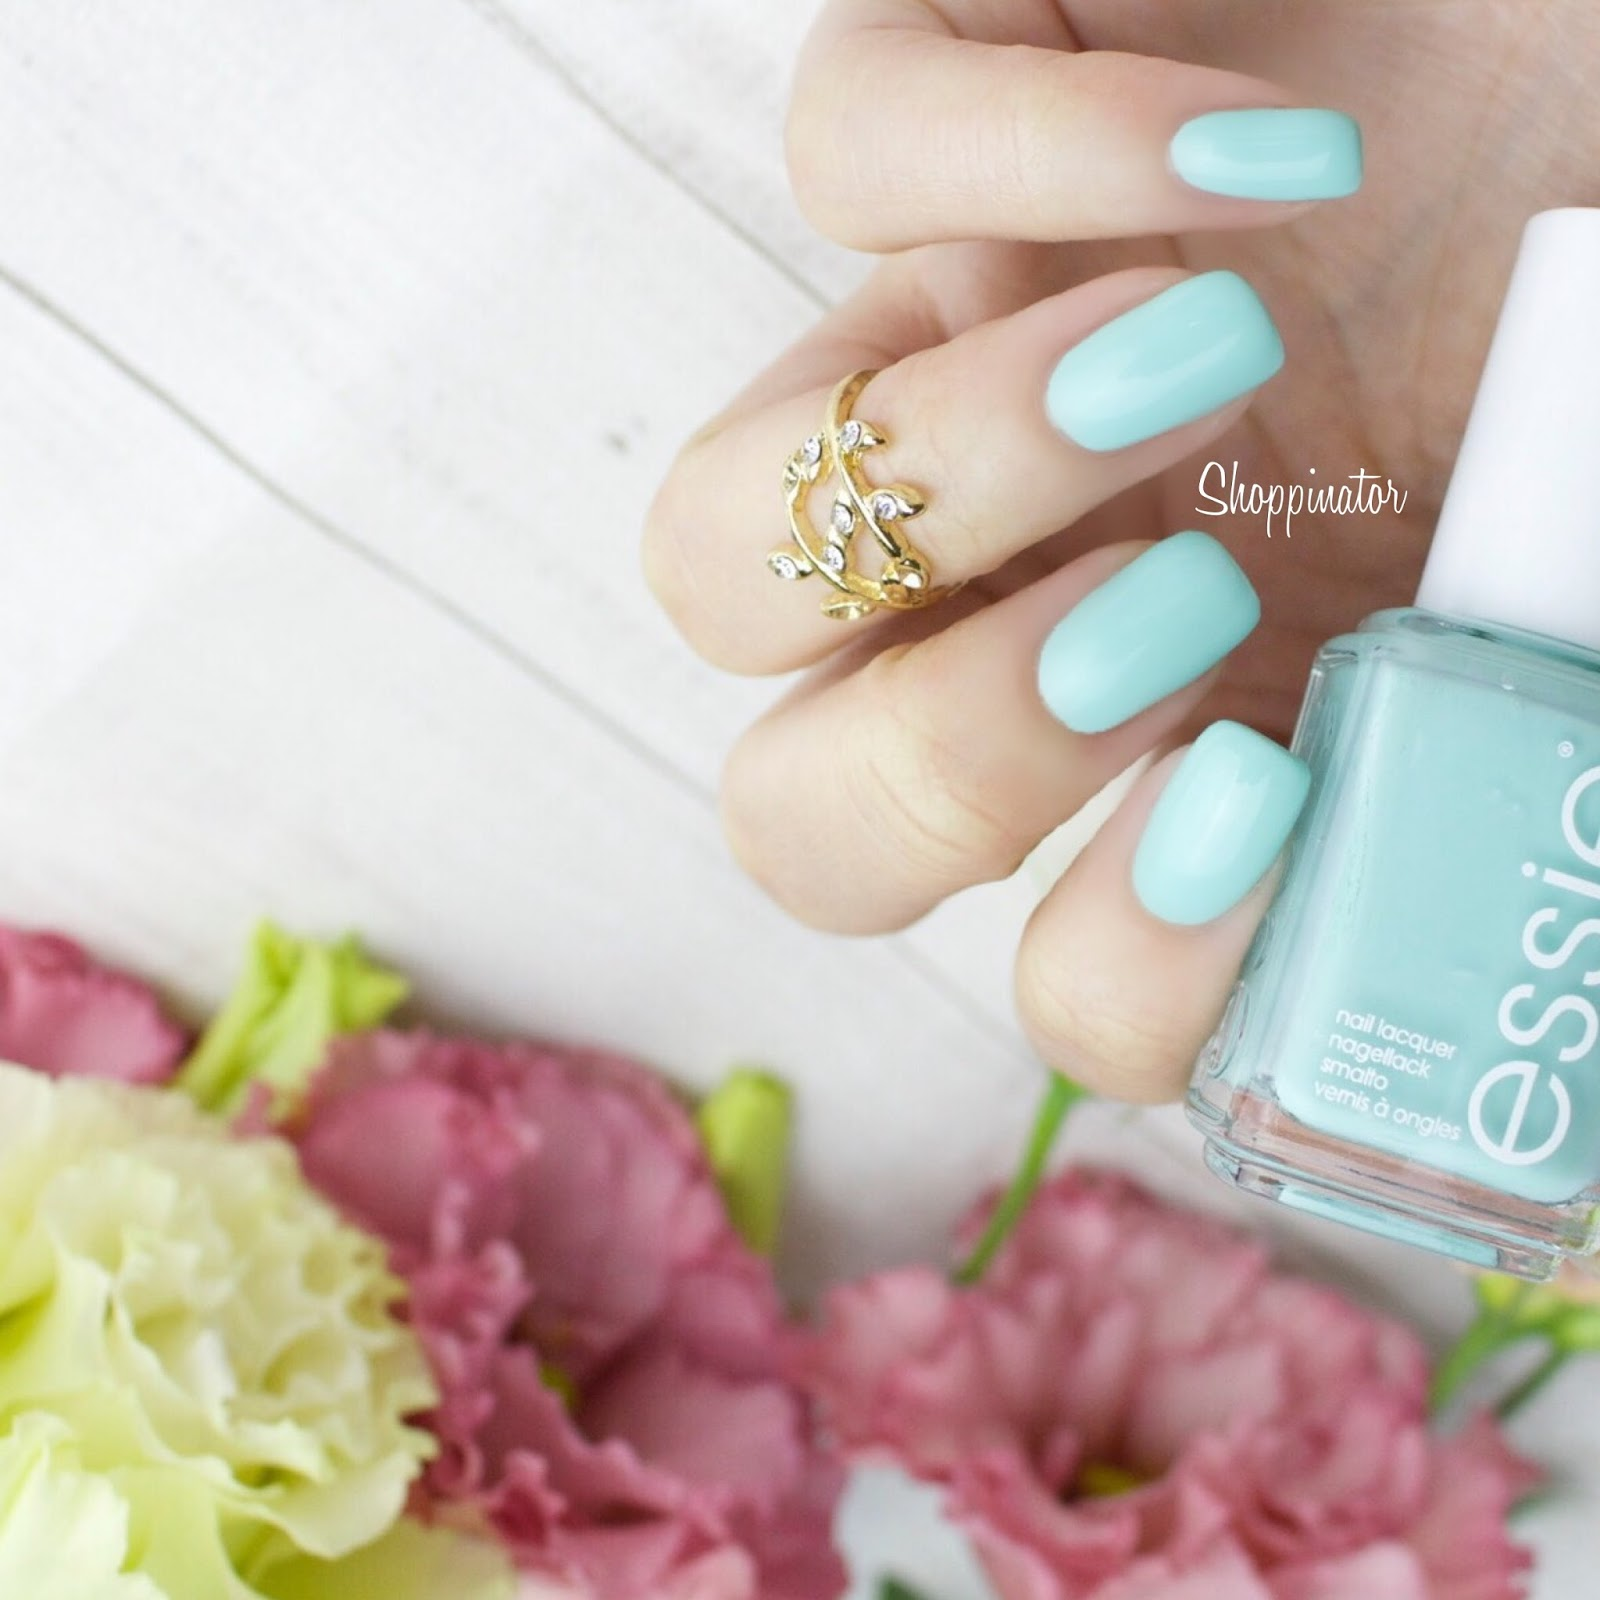 essie-spring-le-frühling-swatches-swatch-review-flowerista-lila-flowers-nagellack-nailpolish-limitiert-notd-nailoftheday-shoppinator-perennial-chic-blossom-dandy-garden-variety-petal-pedal-pushers-picked-perfect